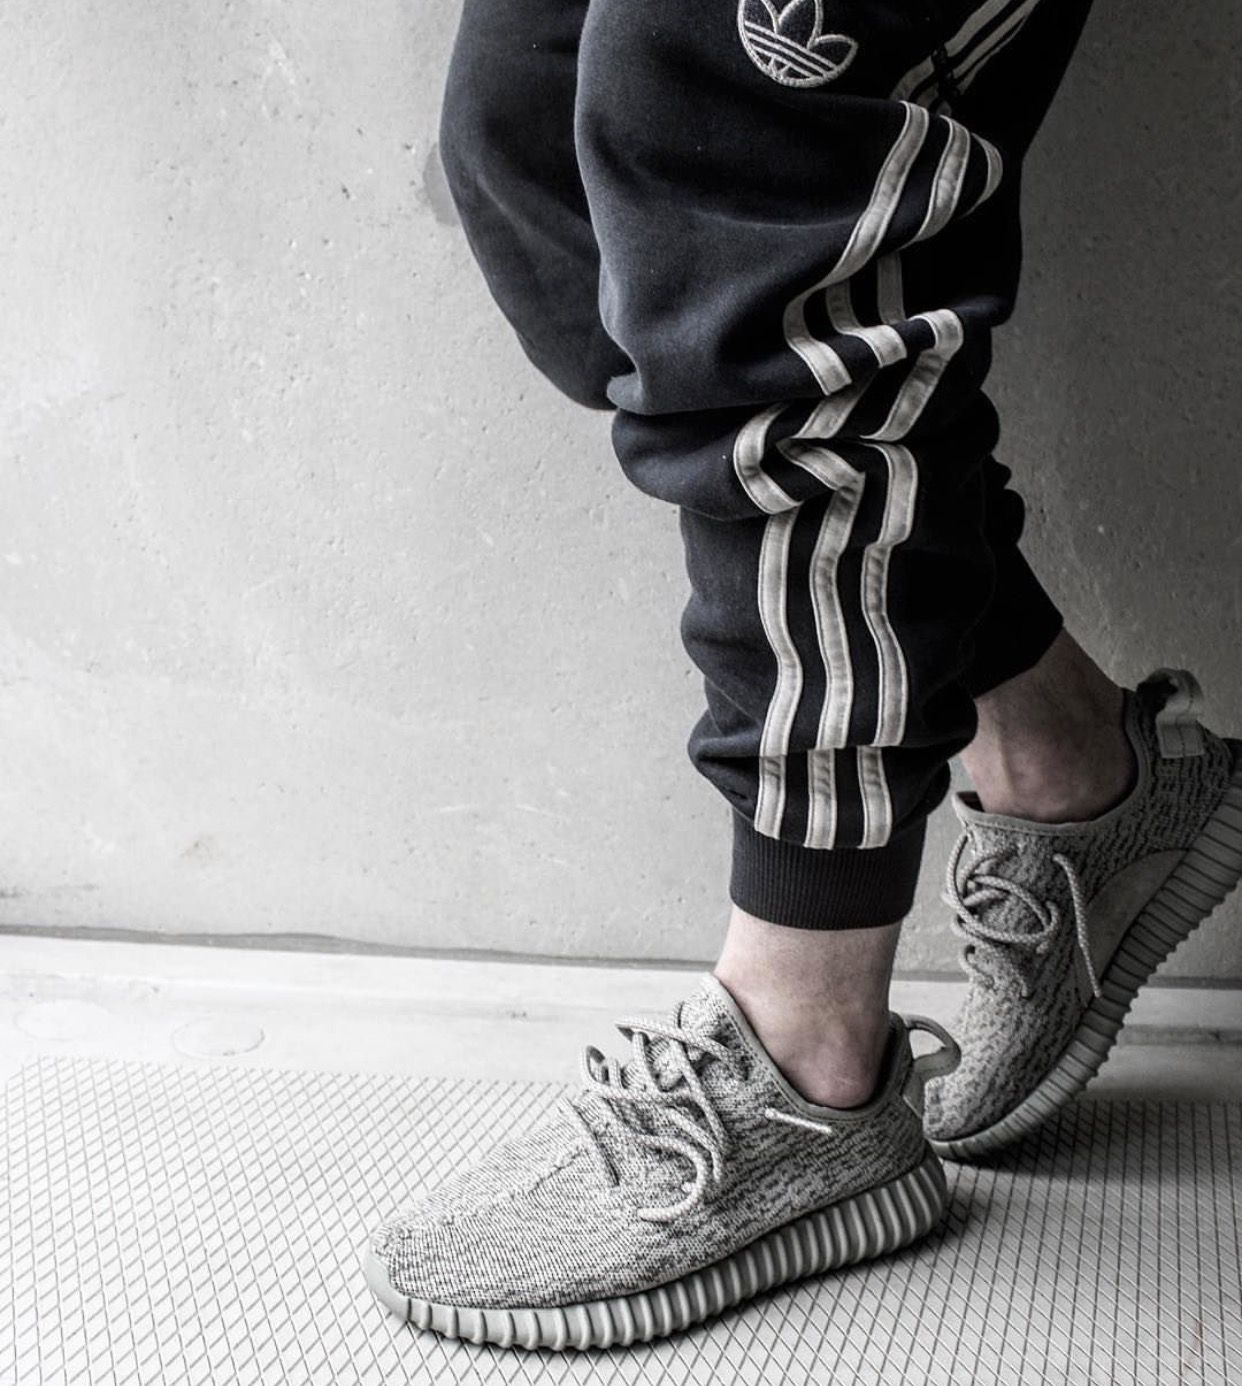 Adidas styling. Feat Yeezy Boosts 350 V1